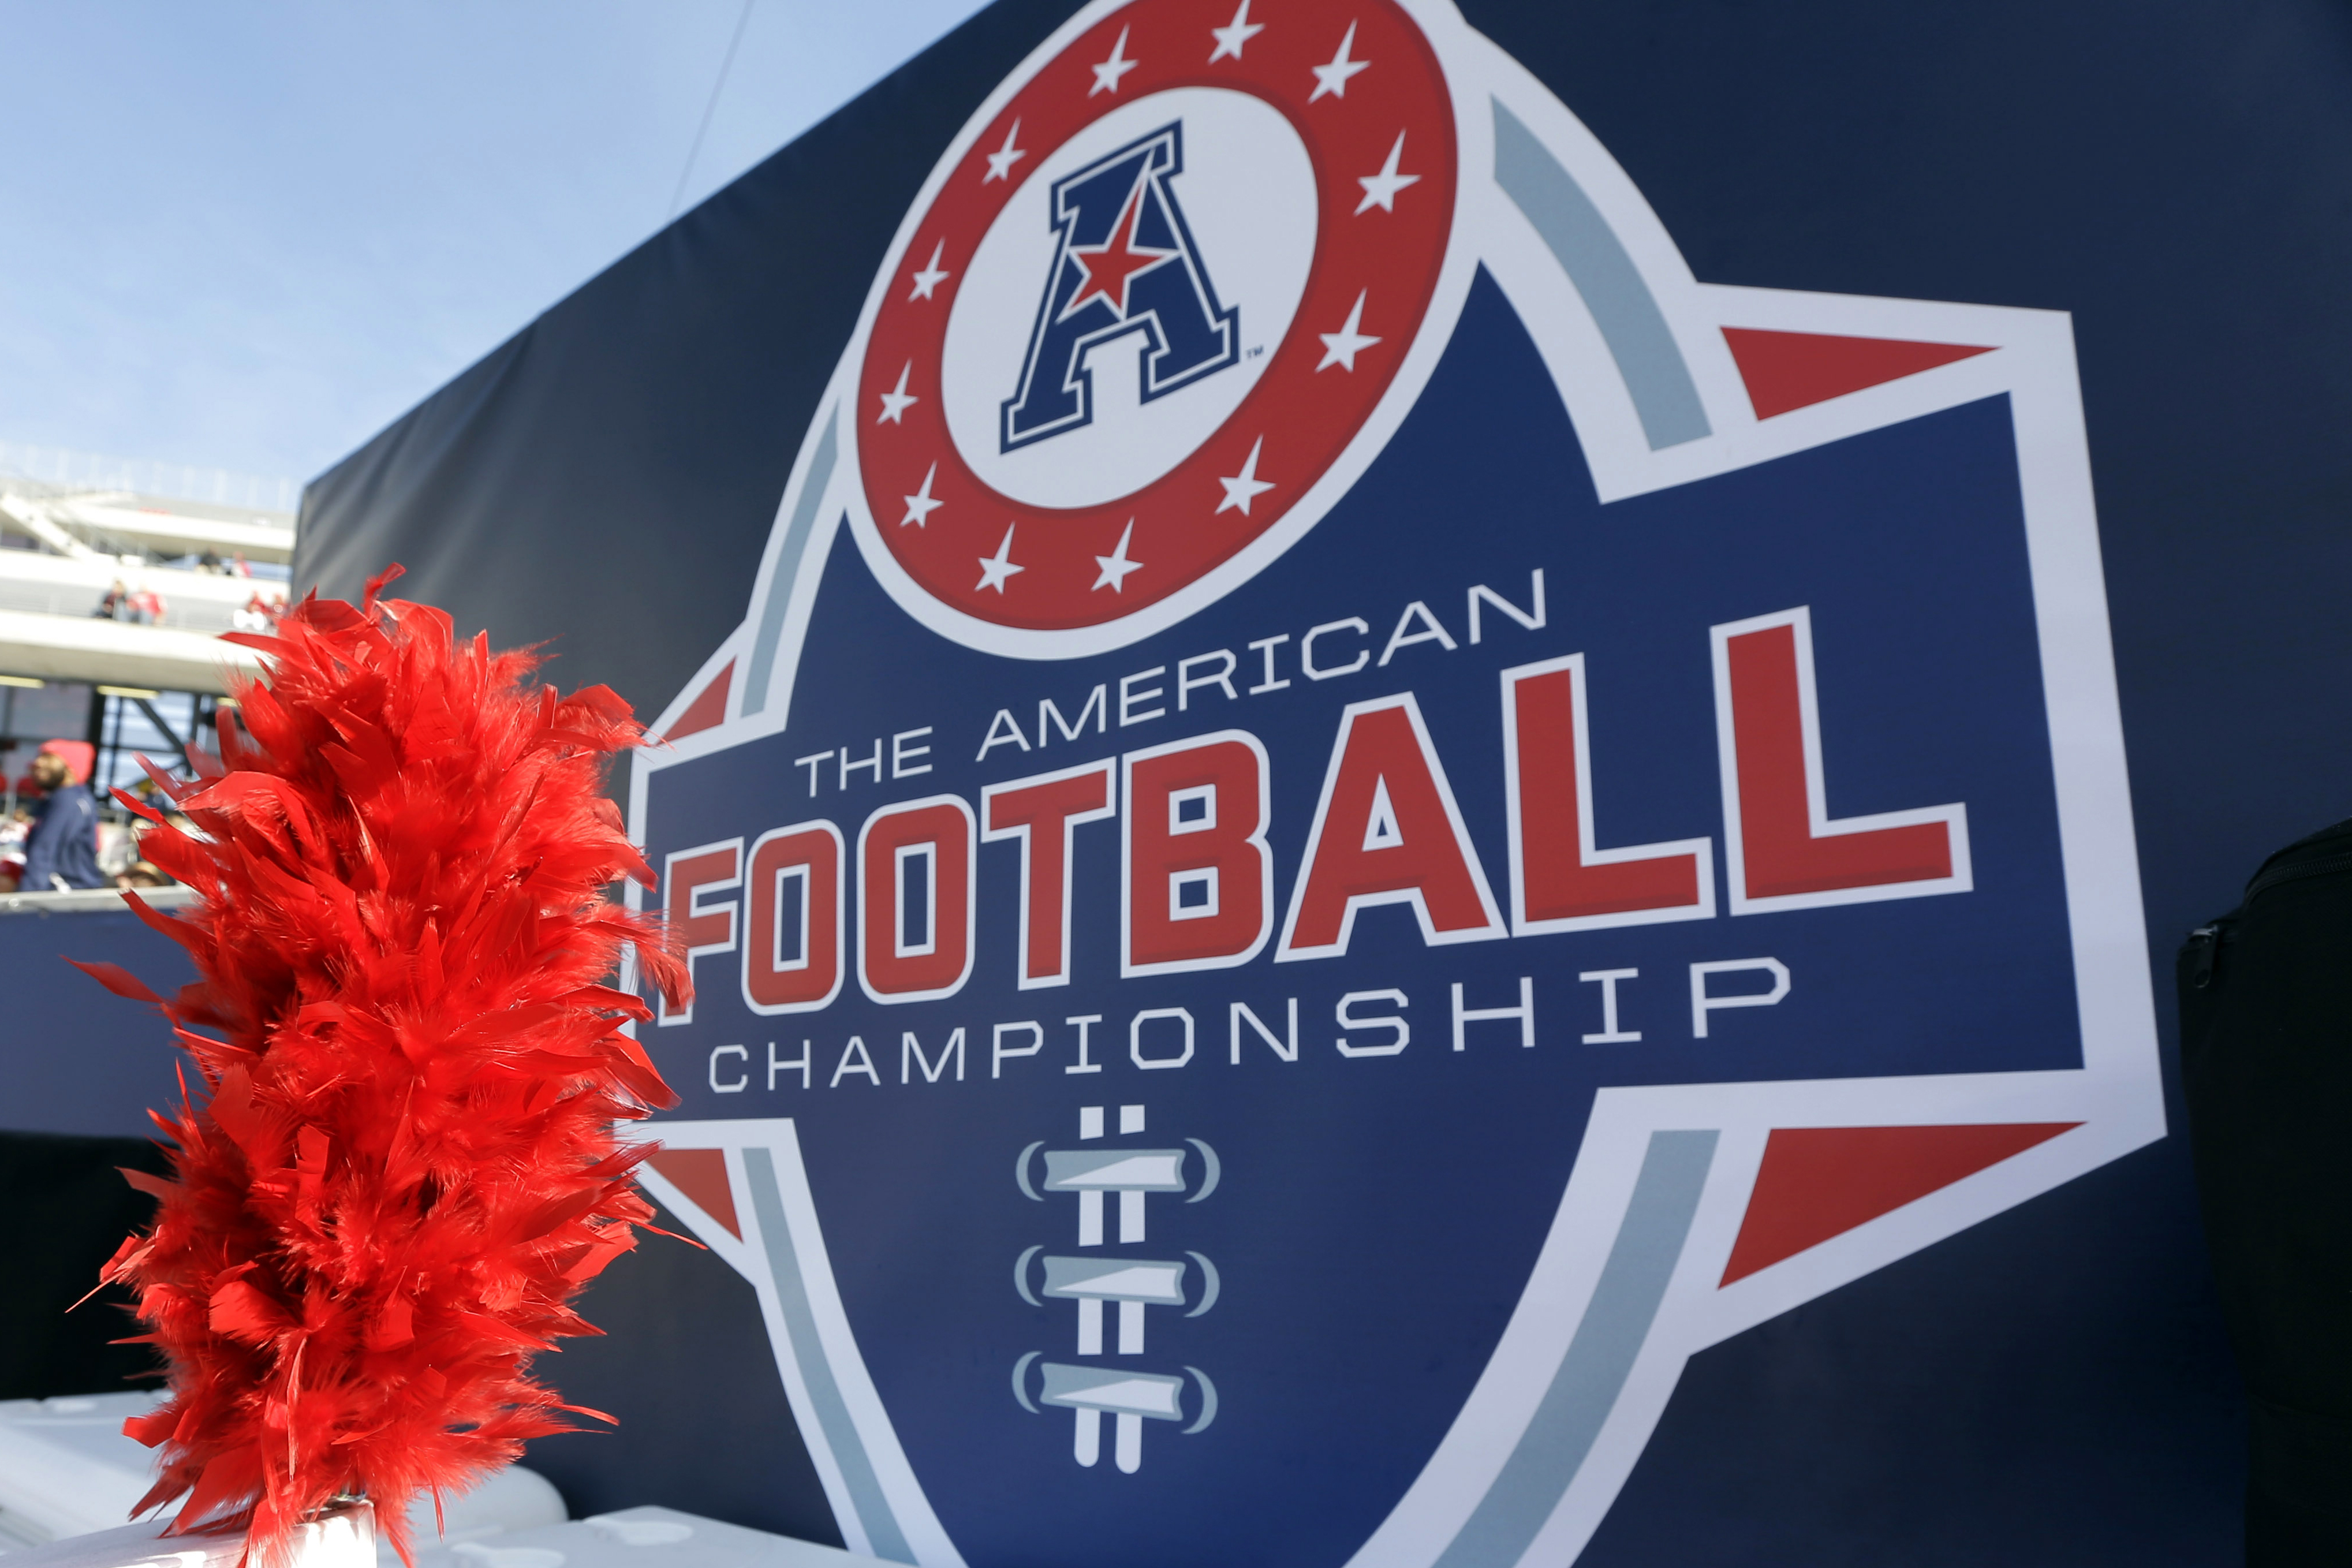 The American Athletic Conference is adding UAB, Texas-San Antonio, Rice, North Texas, Charlotte and Florida Atlantic to the league, replacing Cincinnati, Houston and Central Florida.